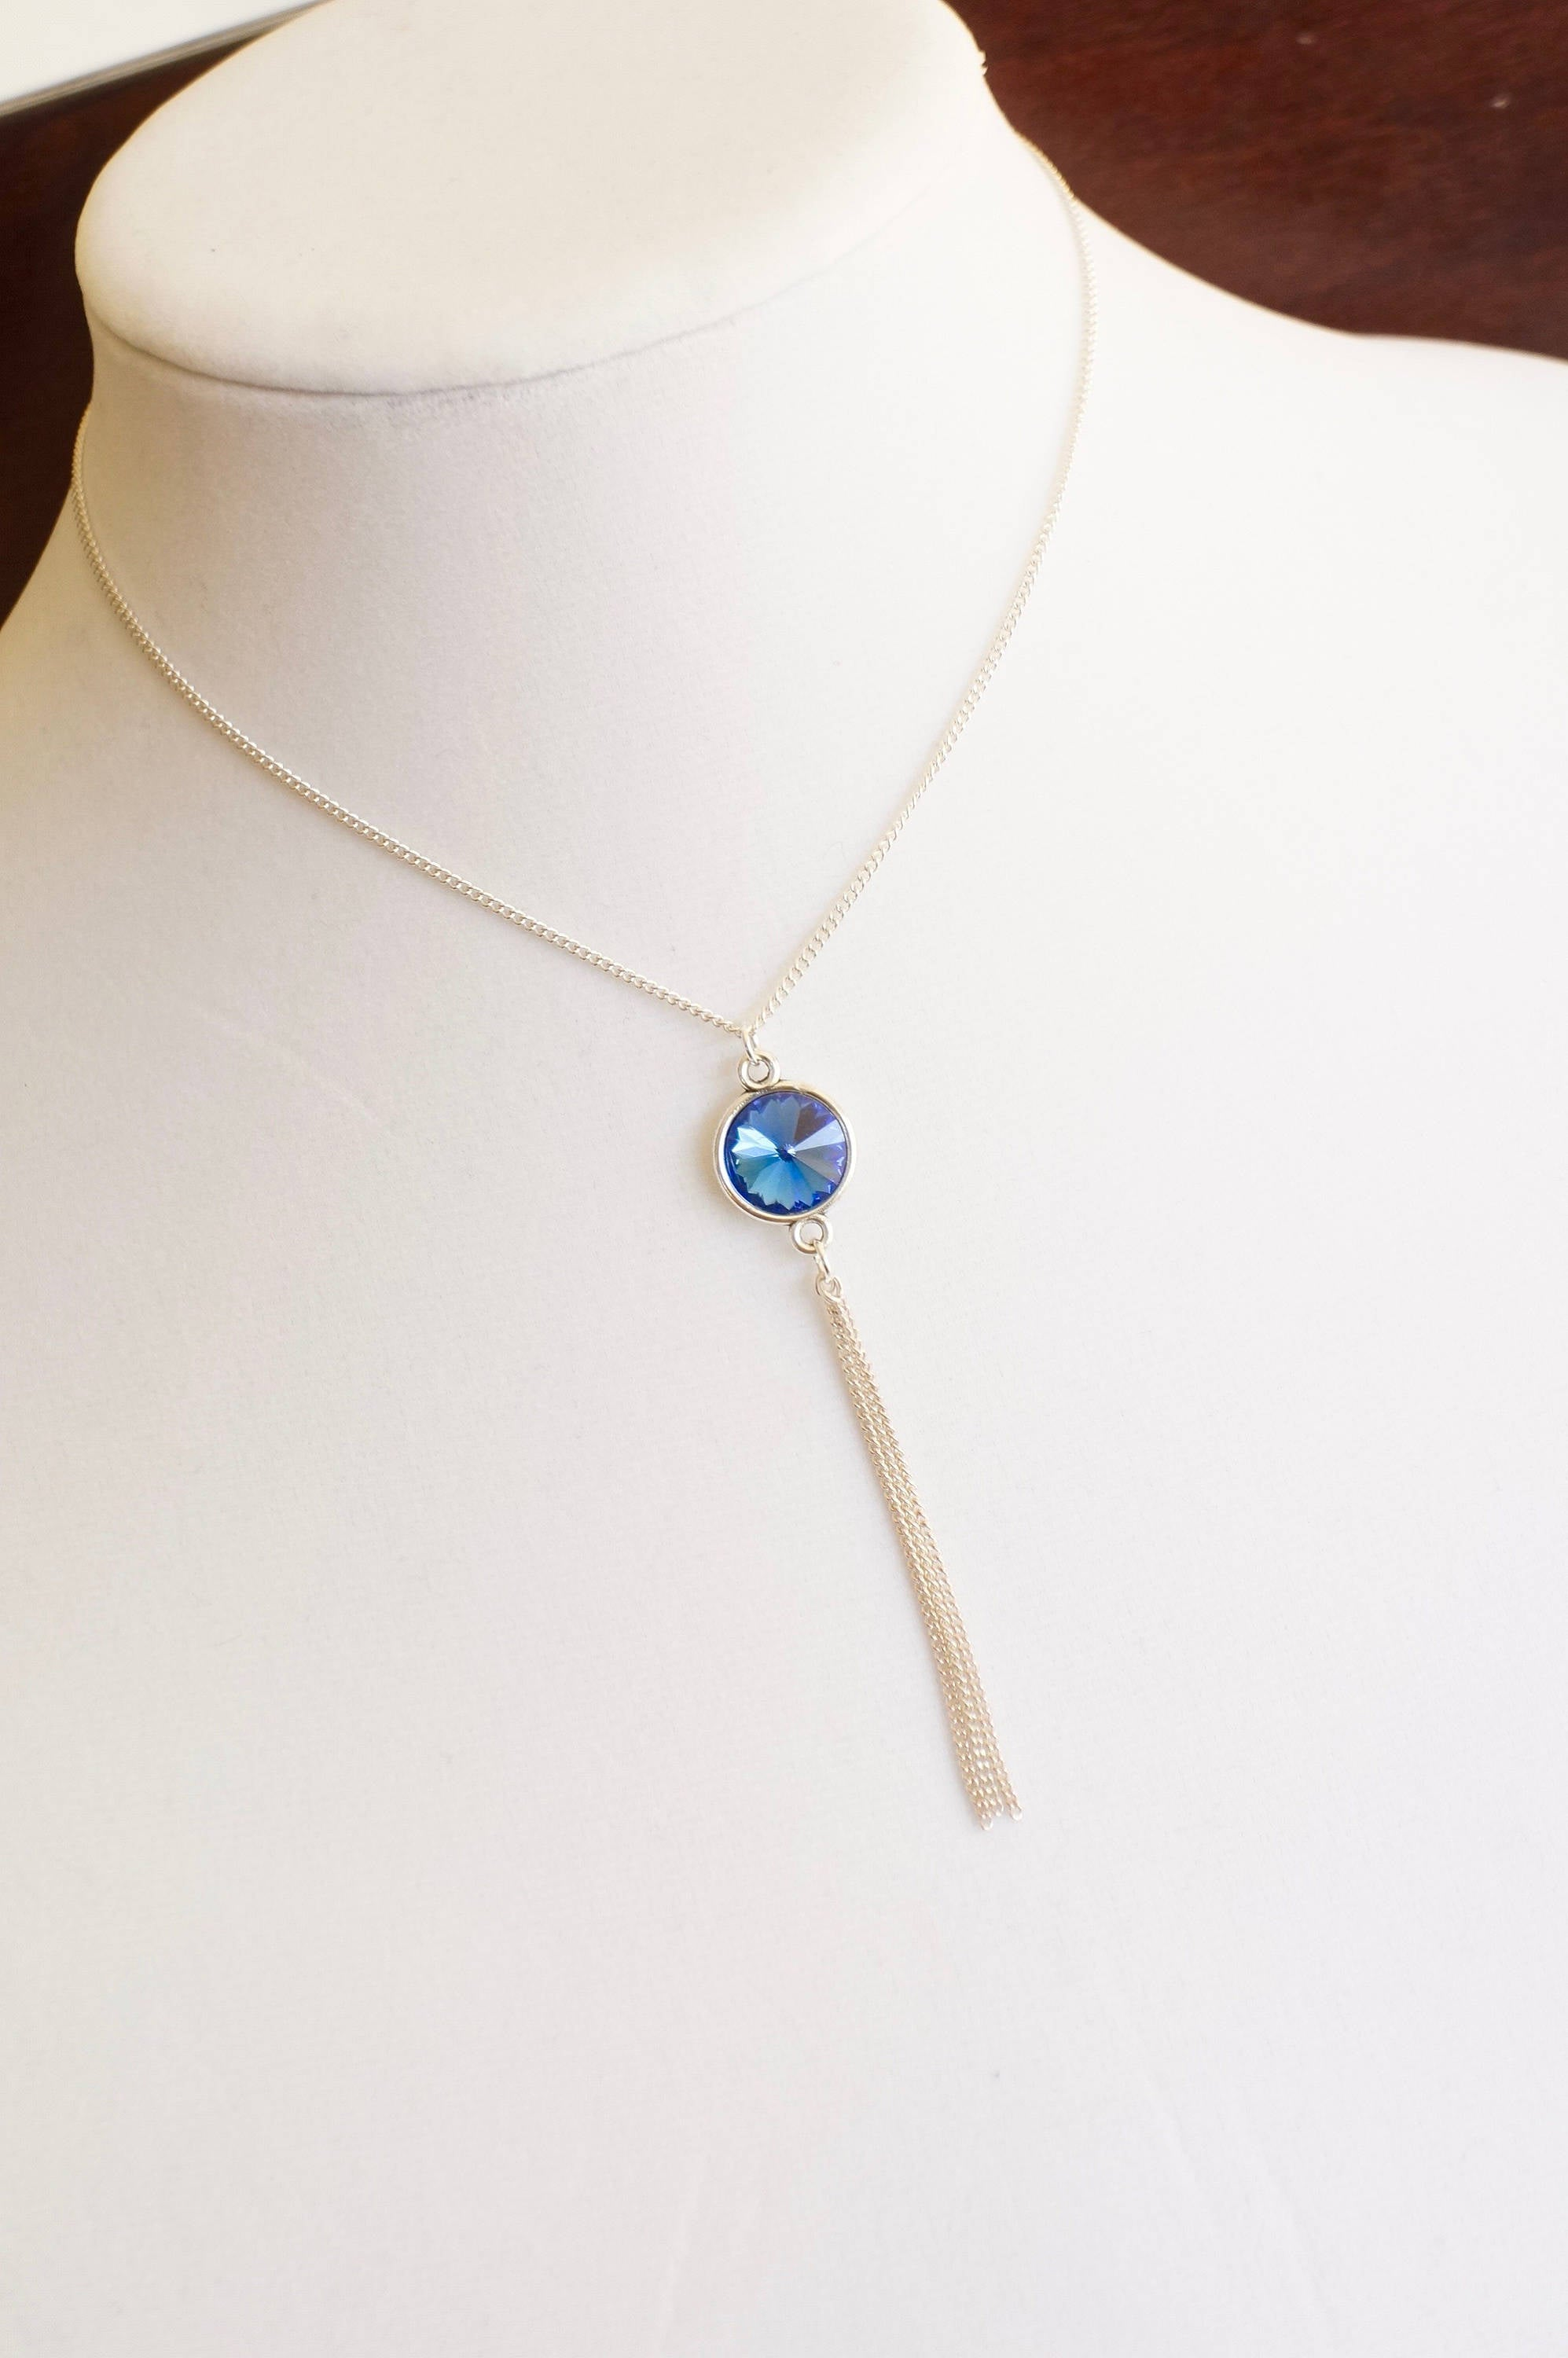 SEPTEMBER BIRTHSTONE Necklace, Sterling Silver Tassel Necklace, Something Blue For Bride, Sapphire Crystal Necklace, Boho Chic Jewelry, Best